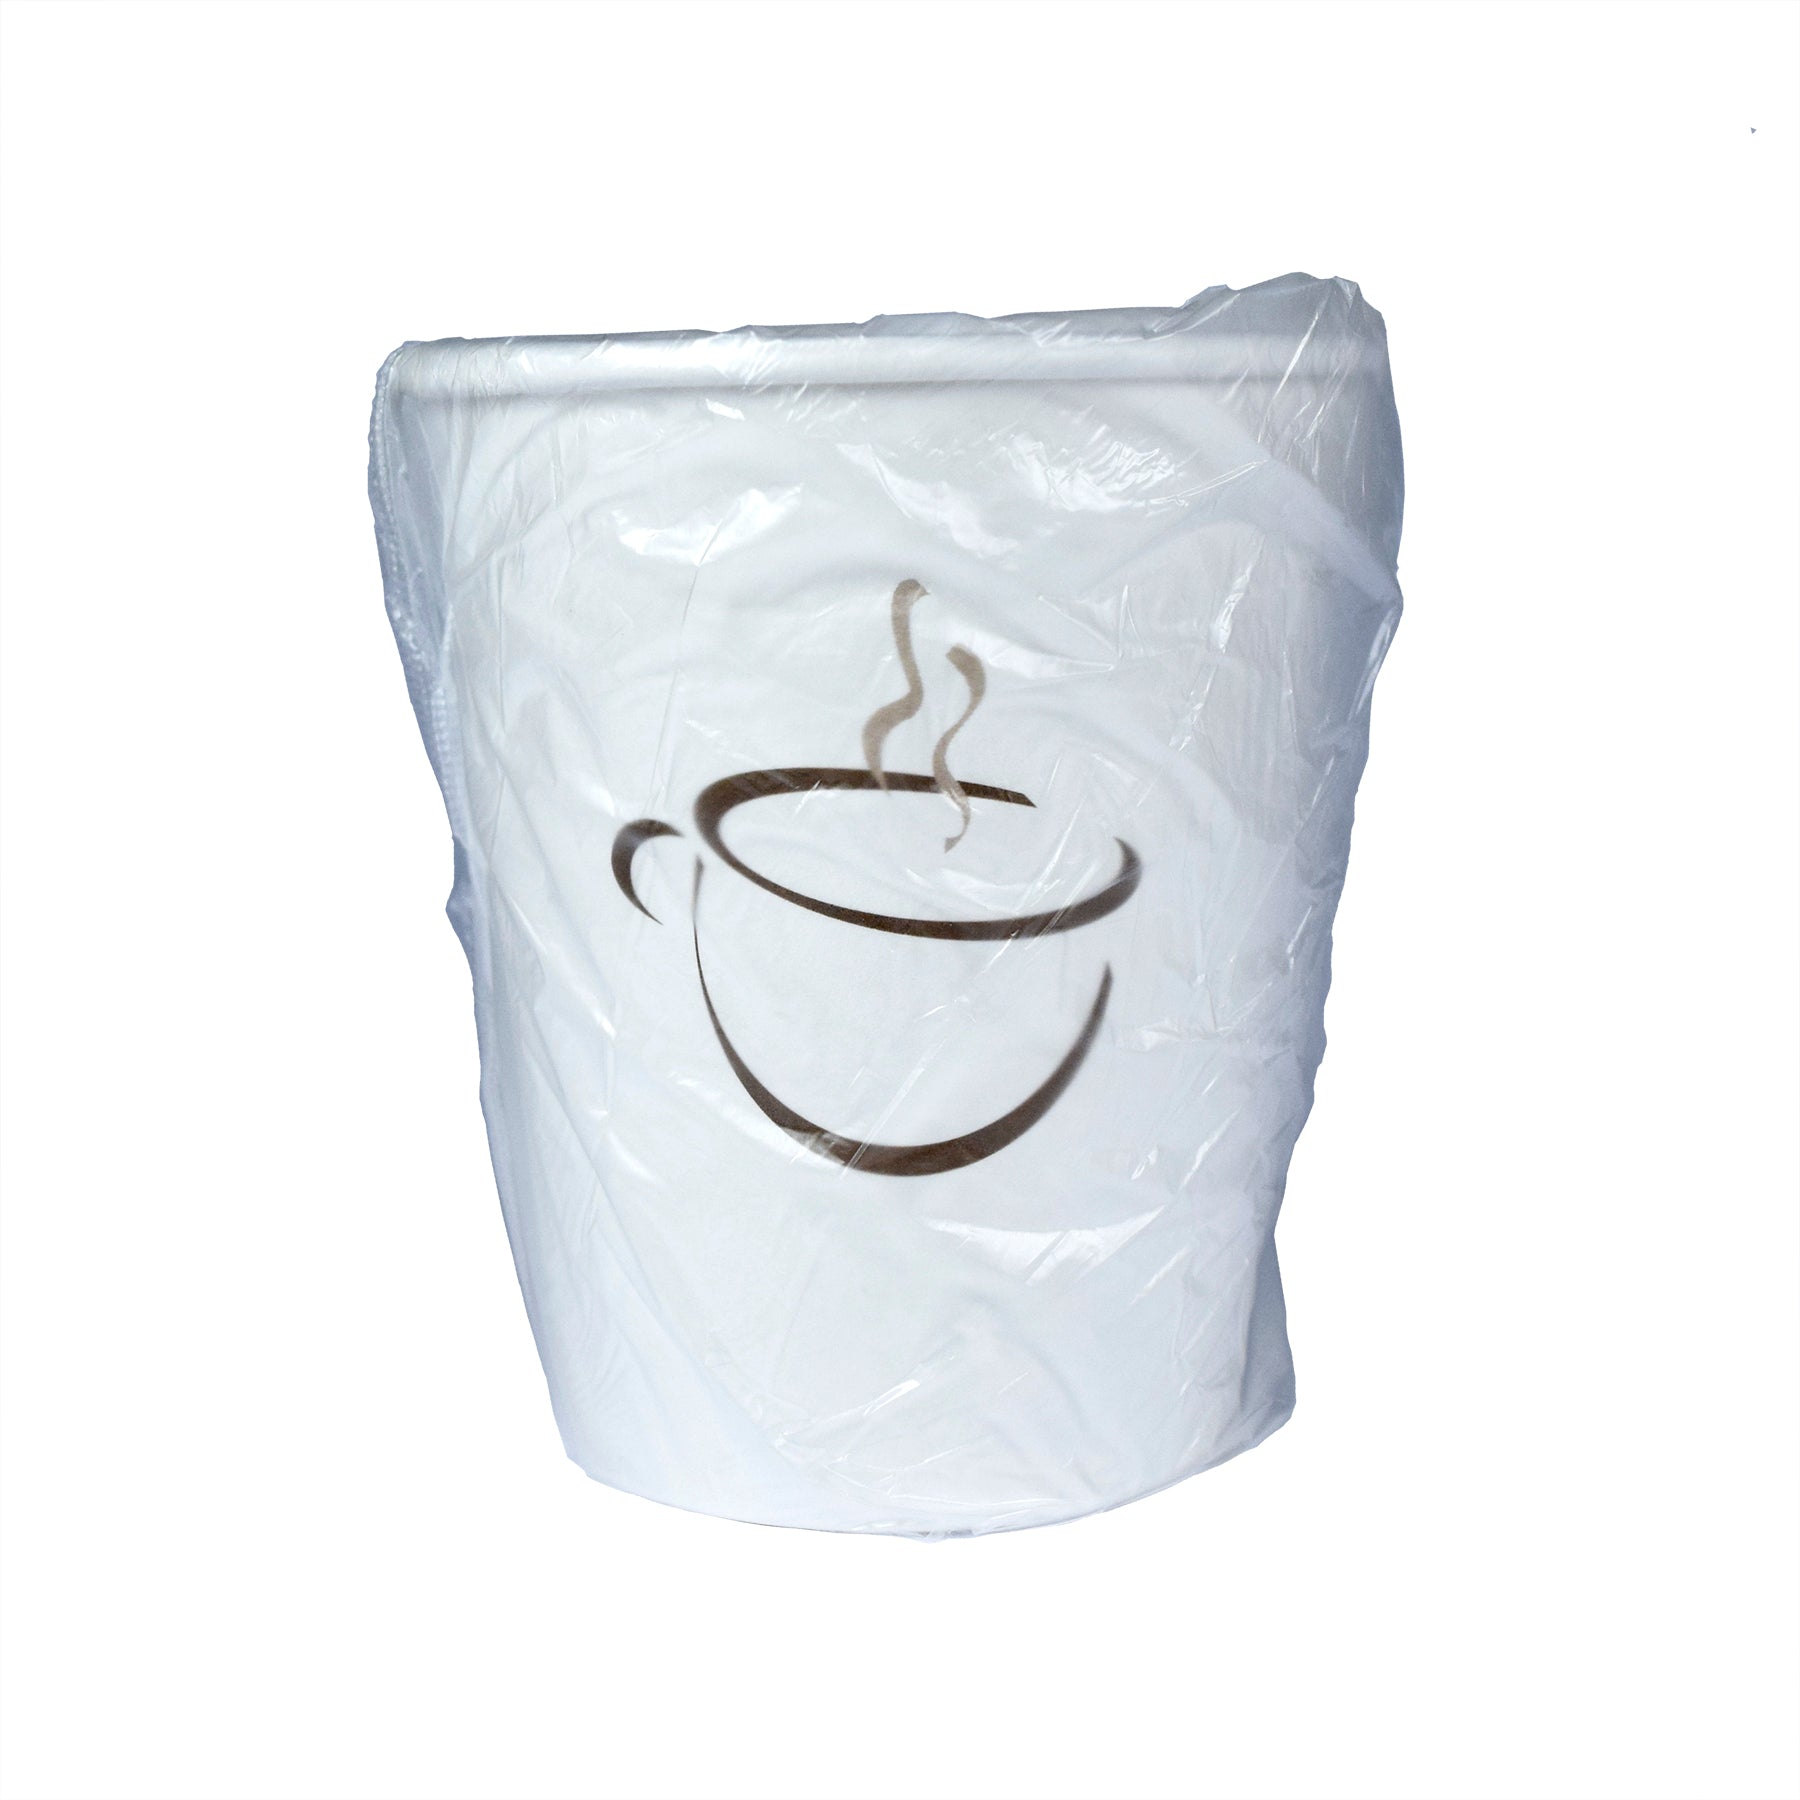 9oz Individually Wrapped Paper Cups sold by Sable Hotel Supply